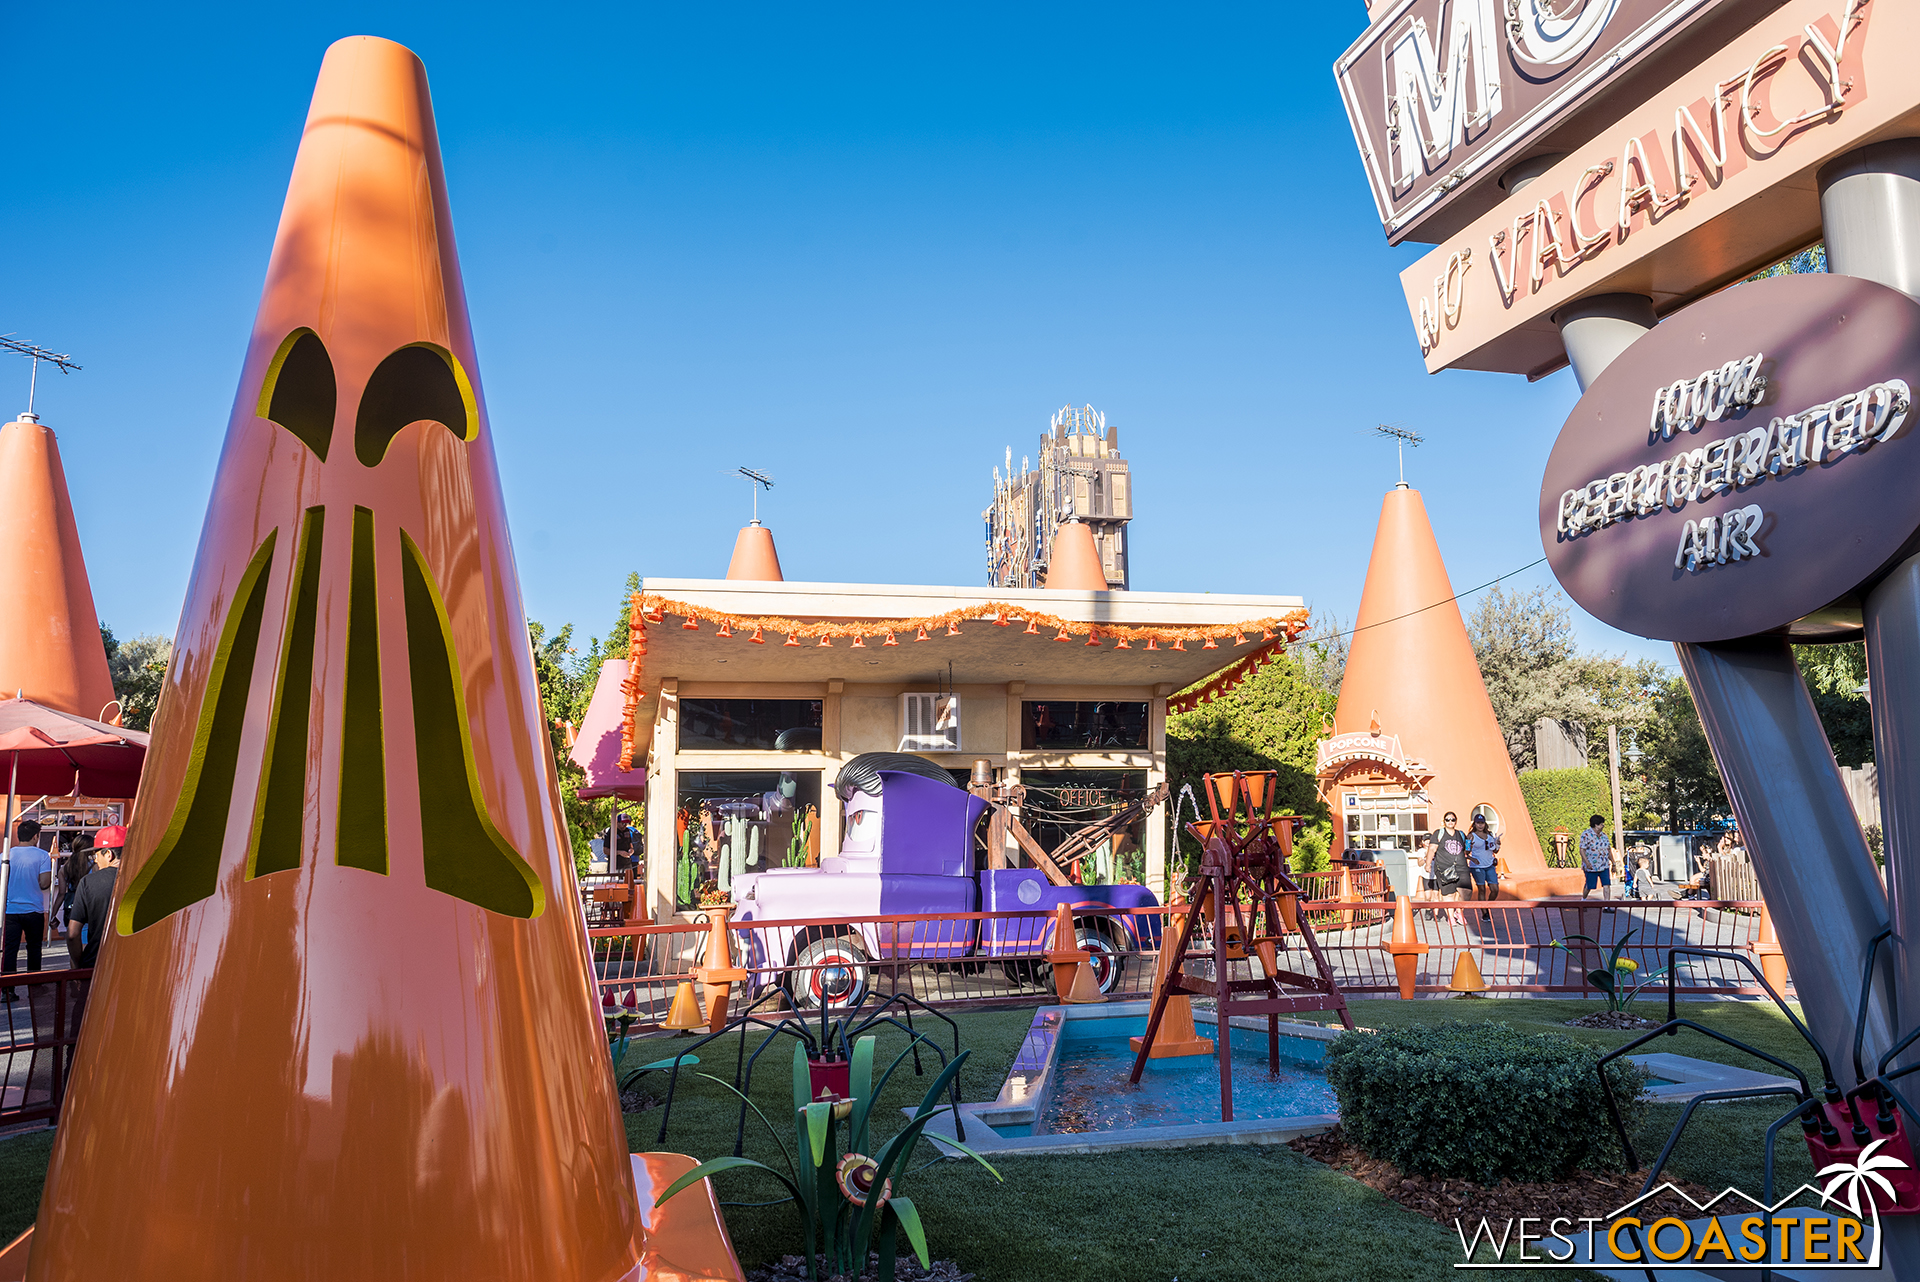 The Cozy Cone has gotten ghostly.